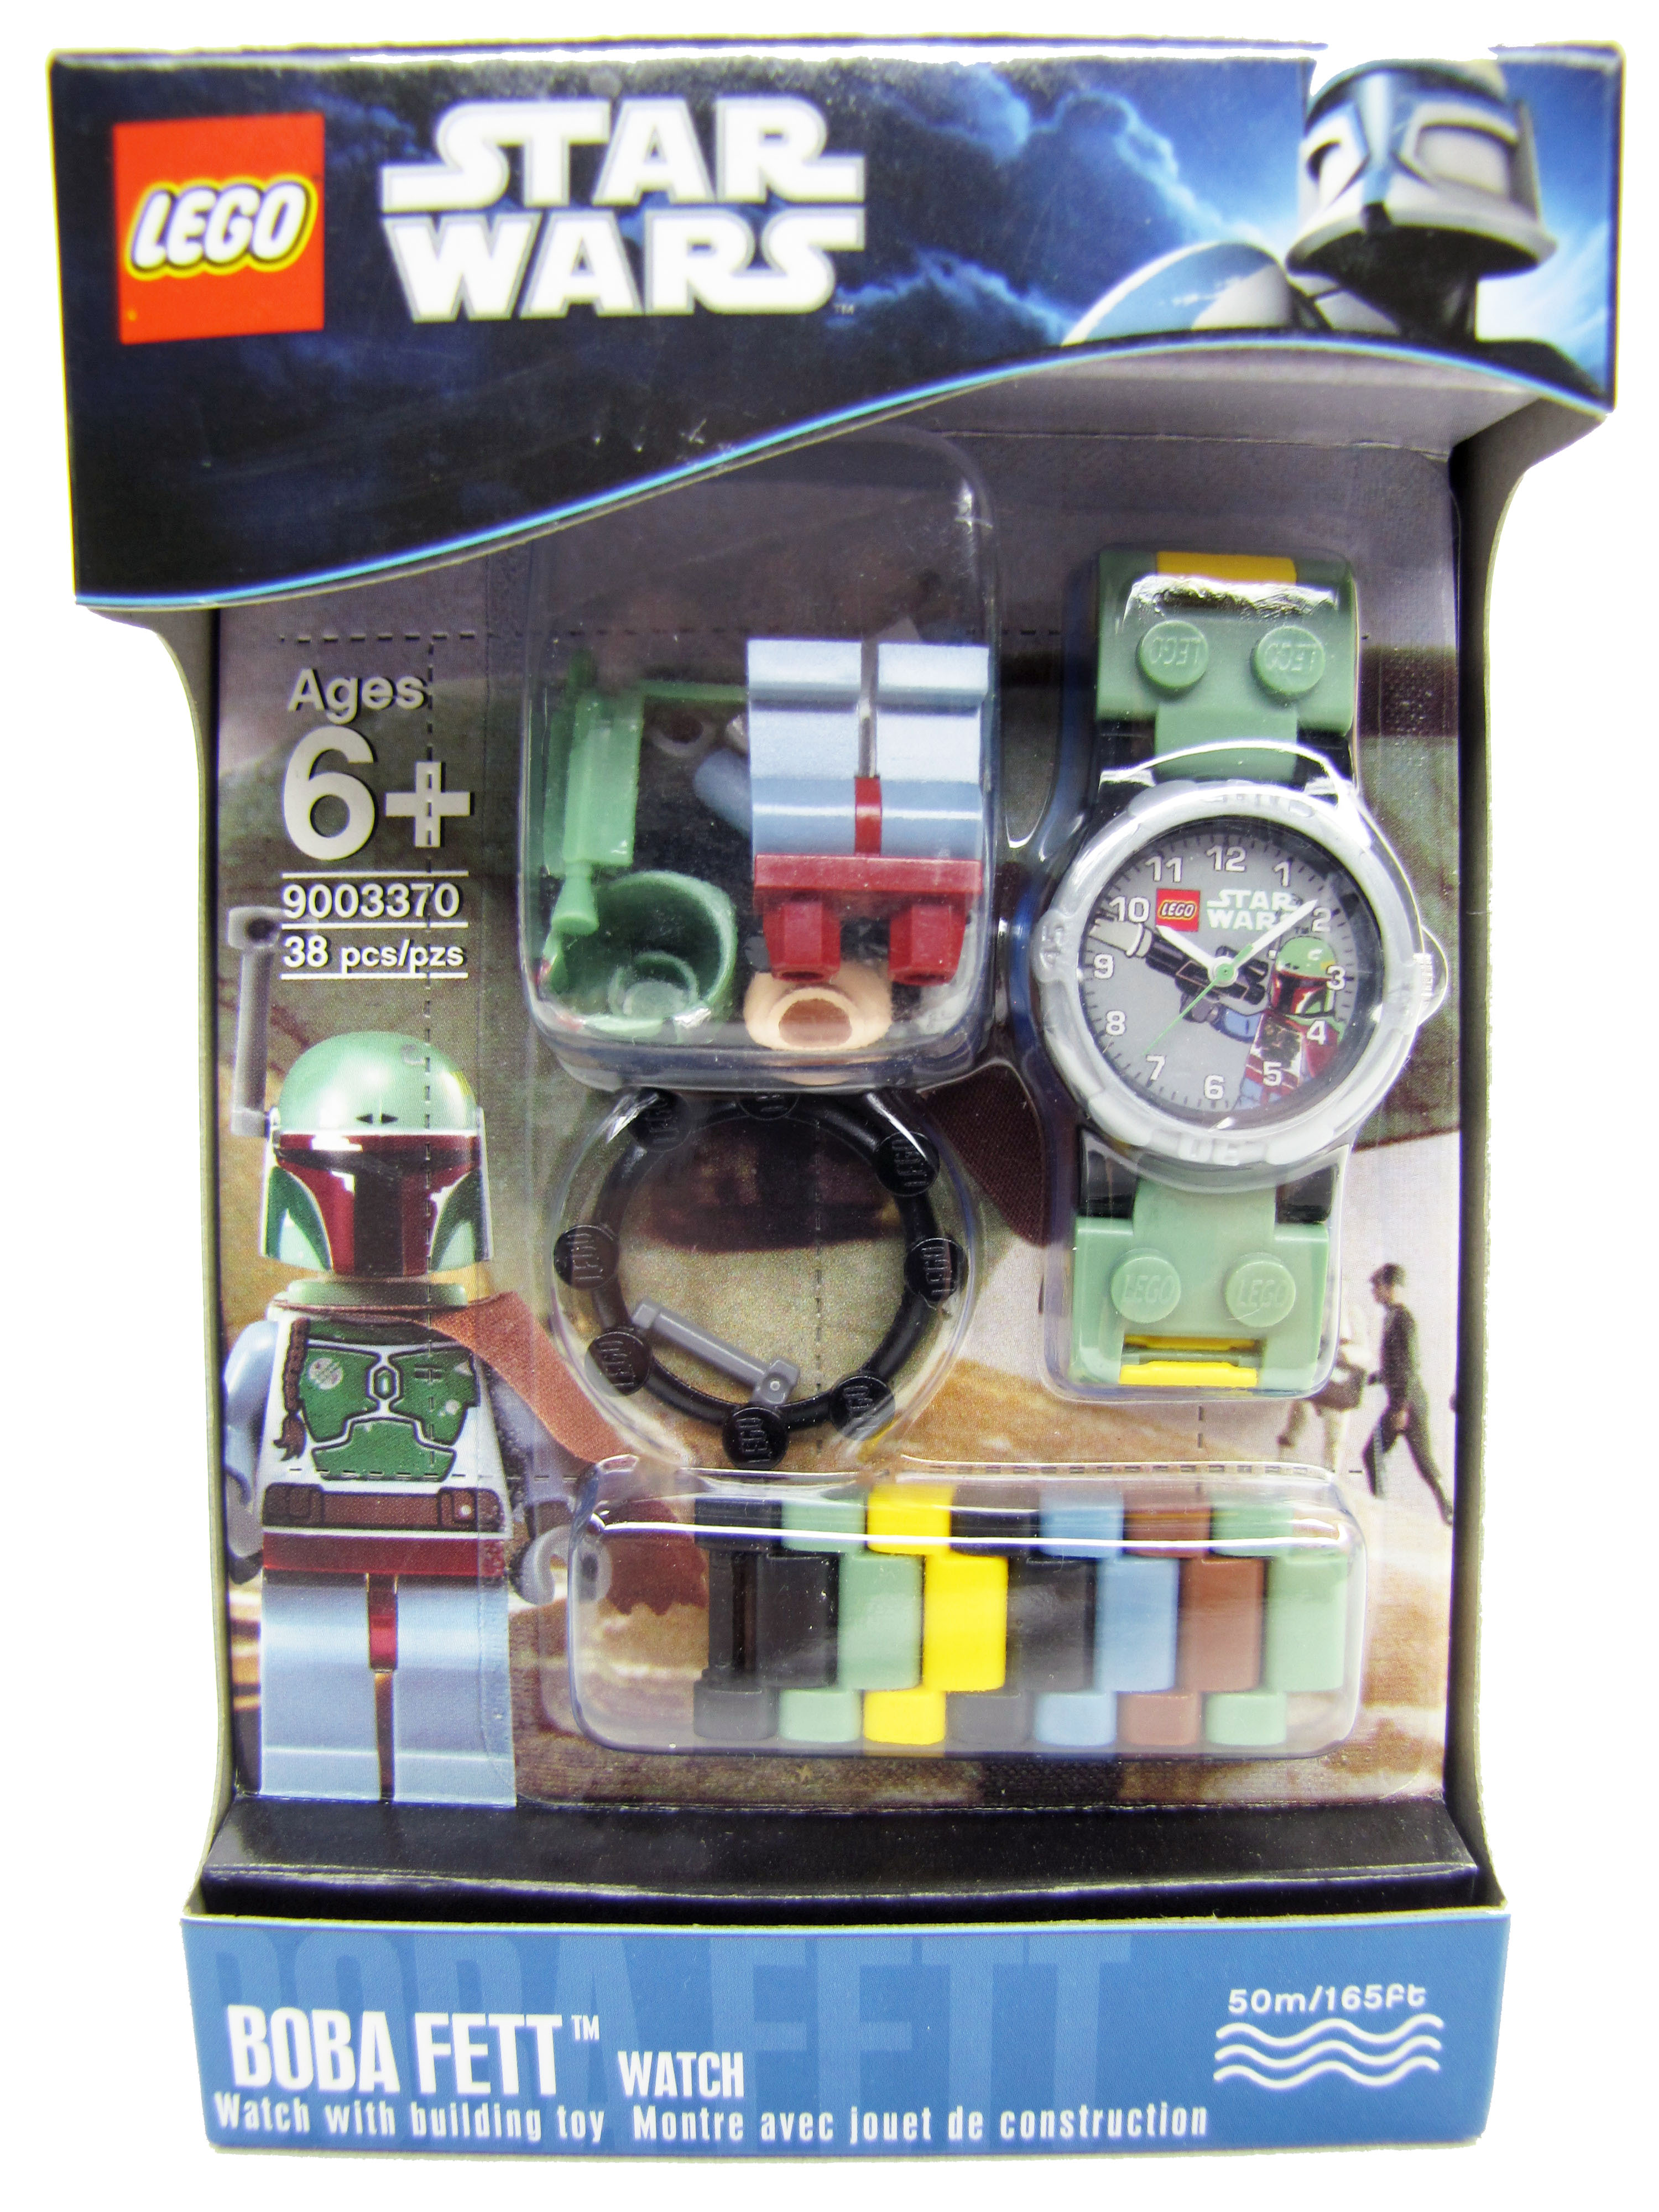 2011 Lego Star Wars Boba Fett Minifigure Watch NEW Lego Time 9003370